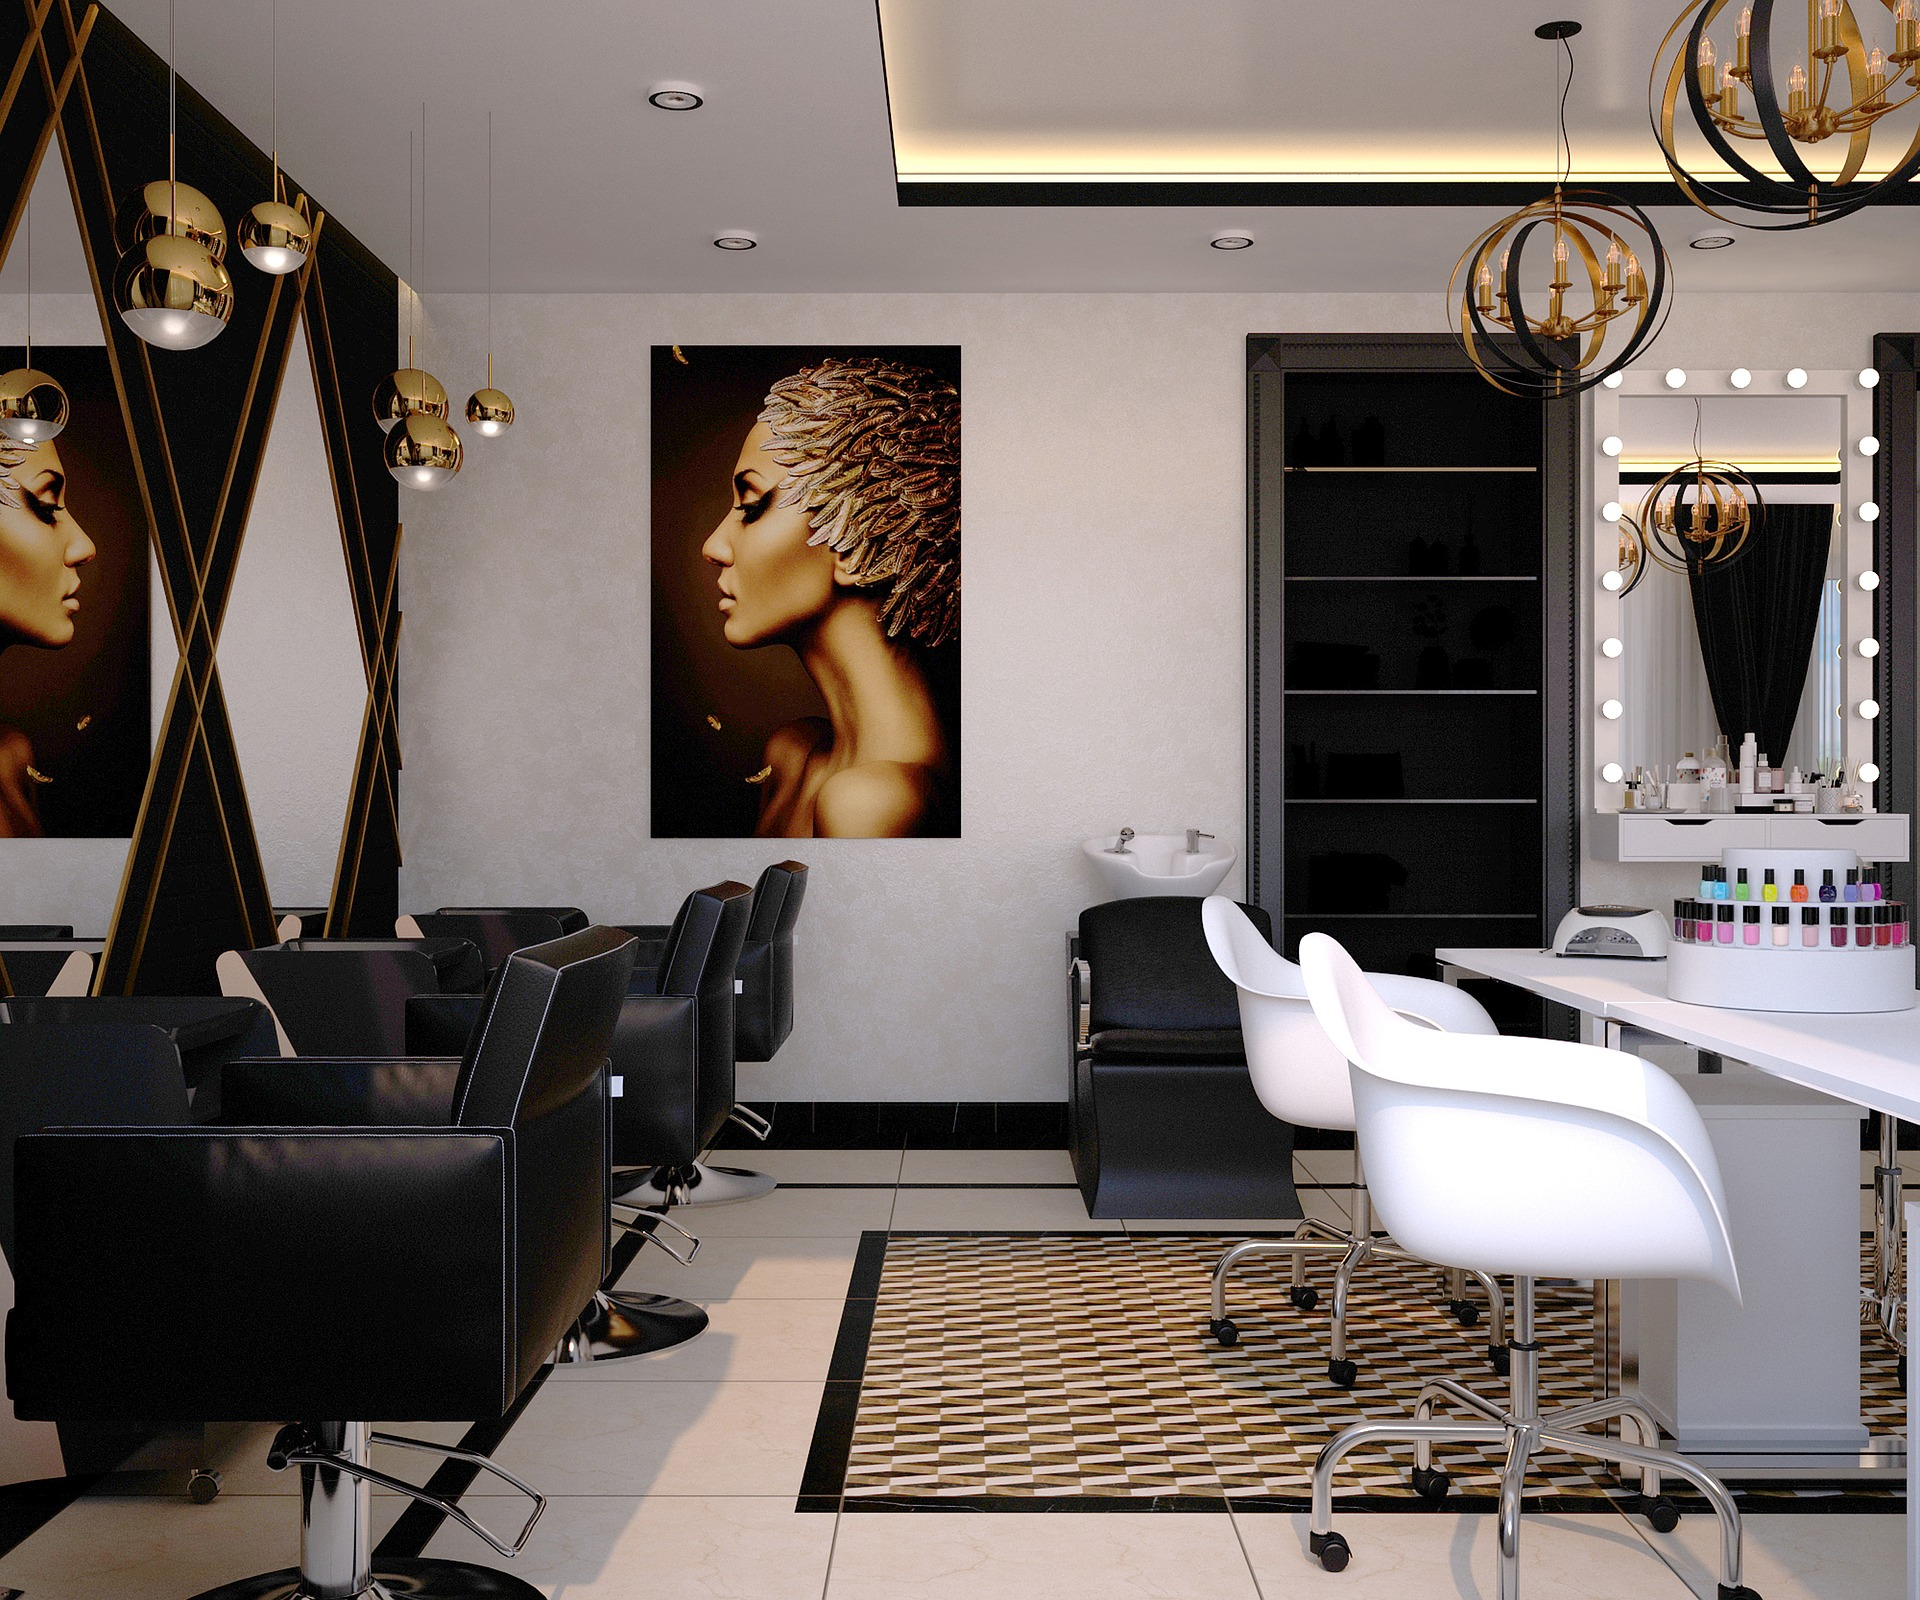 beauty-salon-4043096_1920